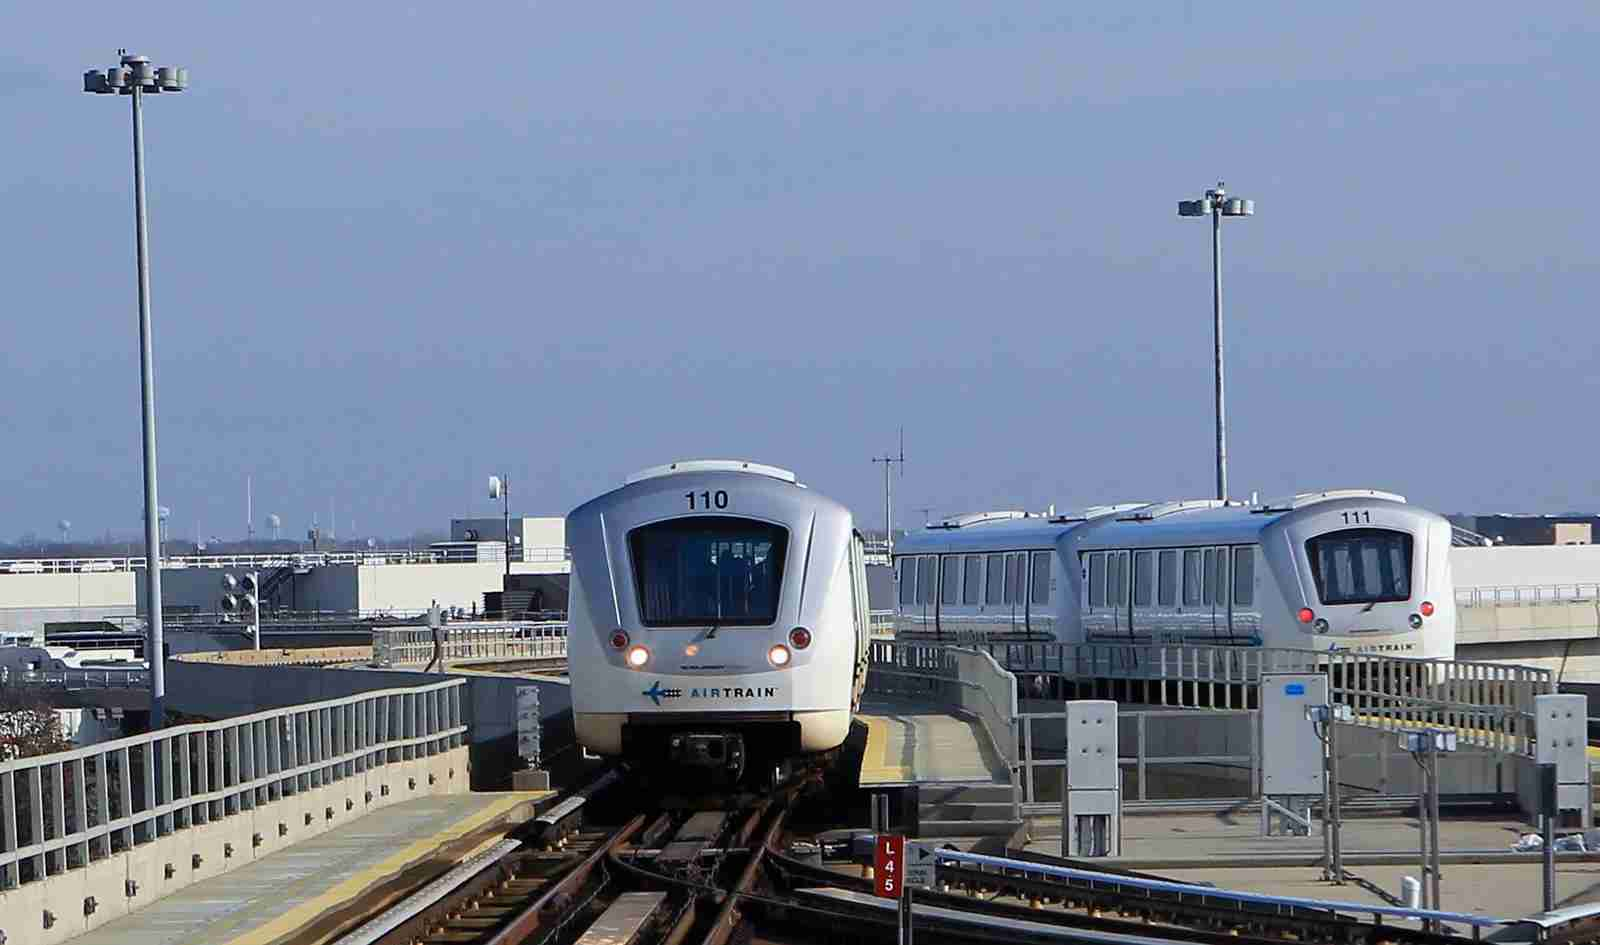 The Airtrain moves along the tracks at JFK airport in New York City. (Photo by Bruce Bennett / Getty Images)